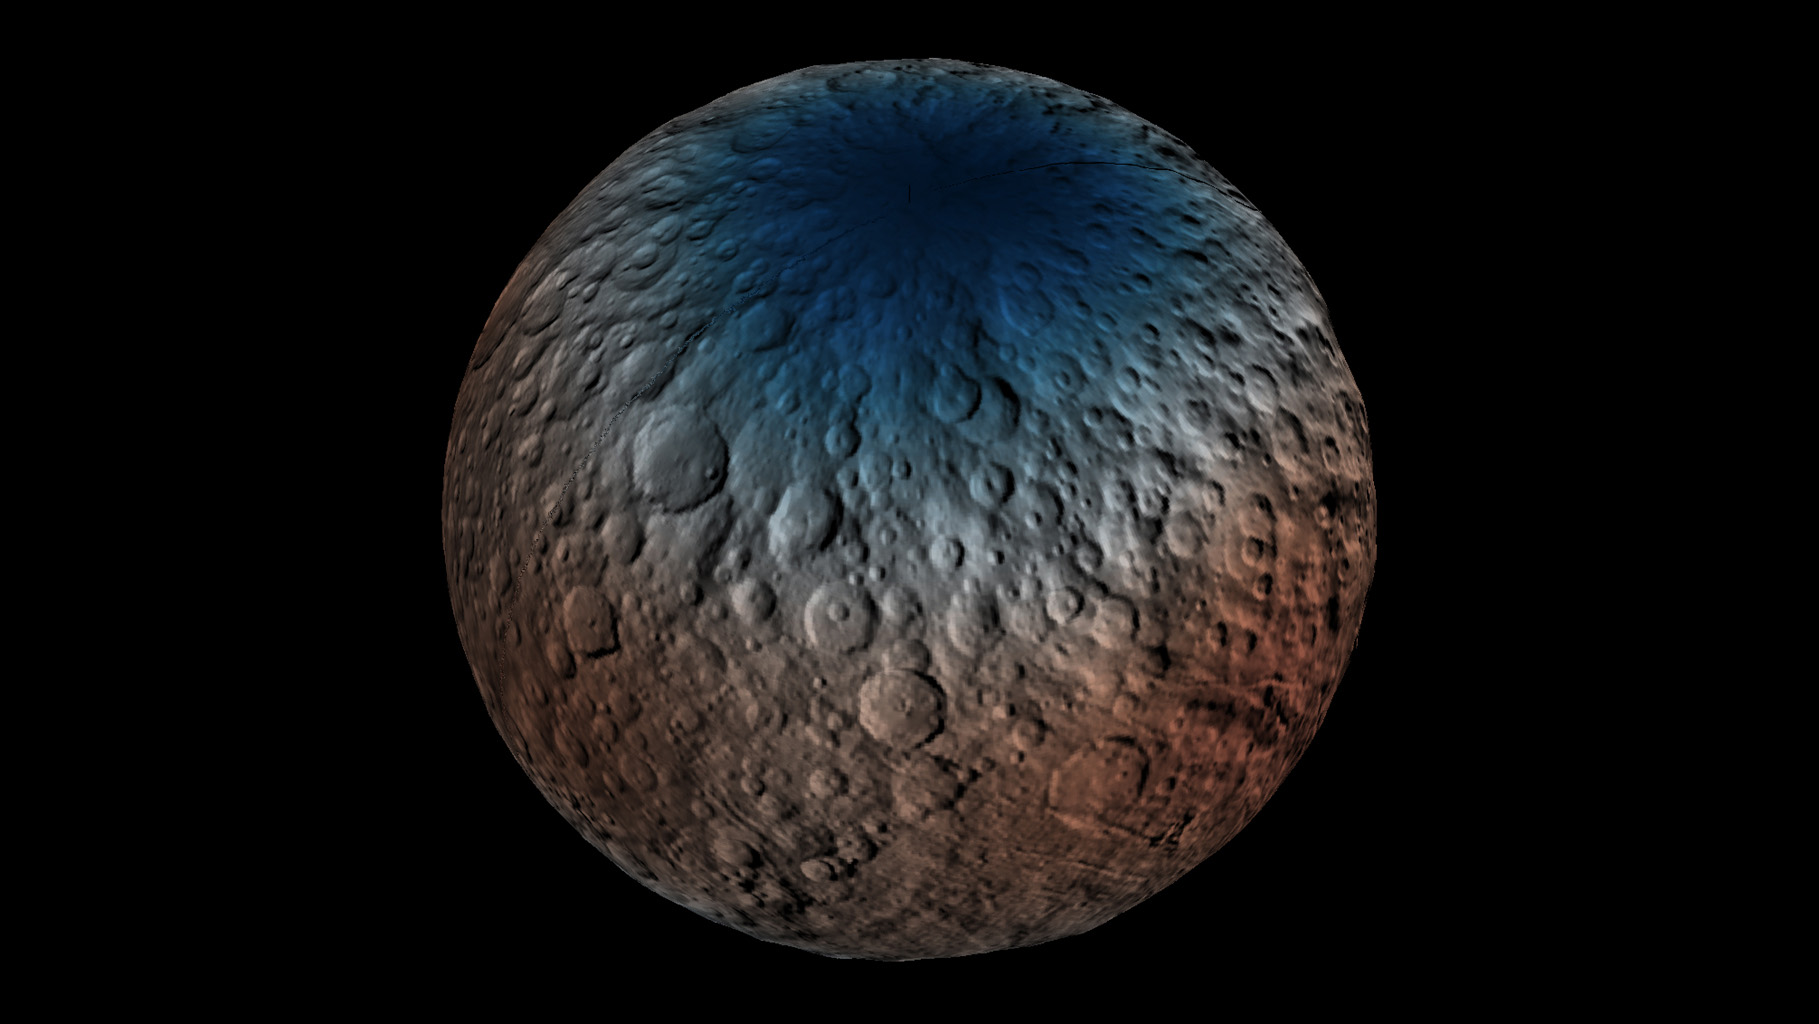 Ceres' Haulani Crater is shown in these views from NASA's Dawn spacecraft. These views reveal variations in the region's brightness, mineralogy and temperature at infrared wavelengths.